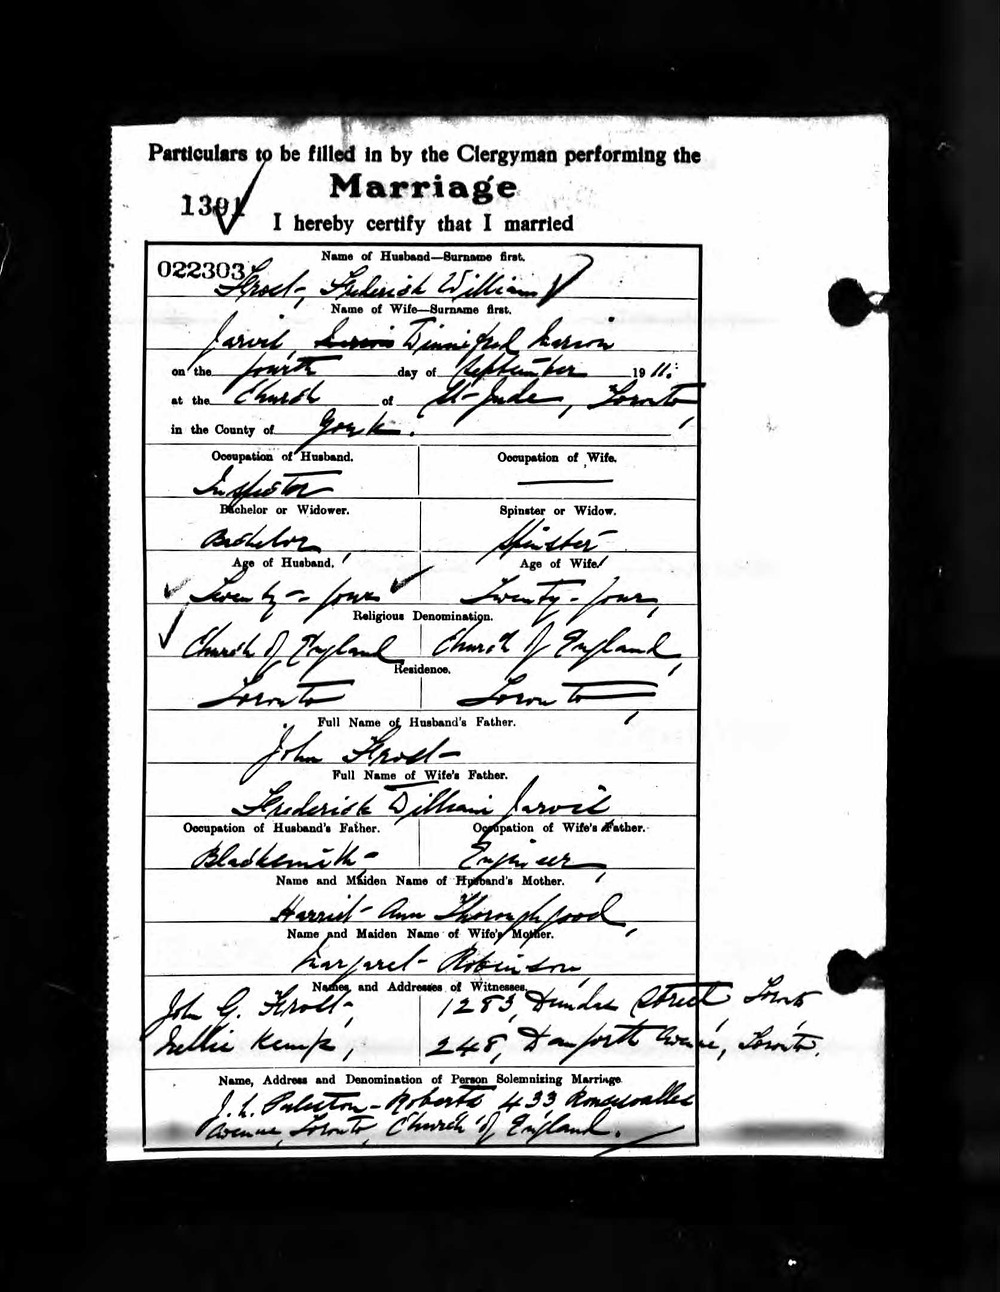 The marriage of Winifred Marion Jarvis to Frederick William Frost on September 4th 1911.